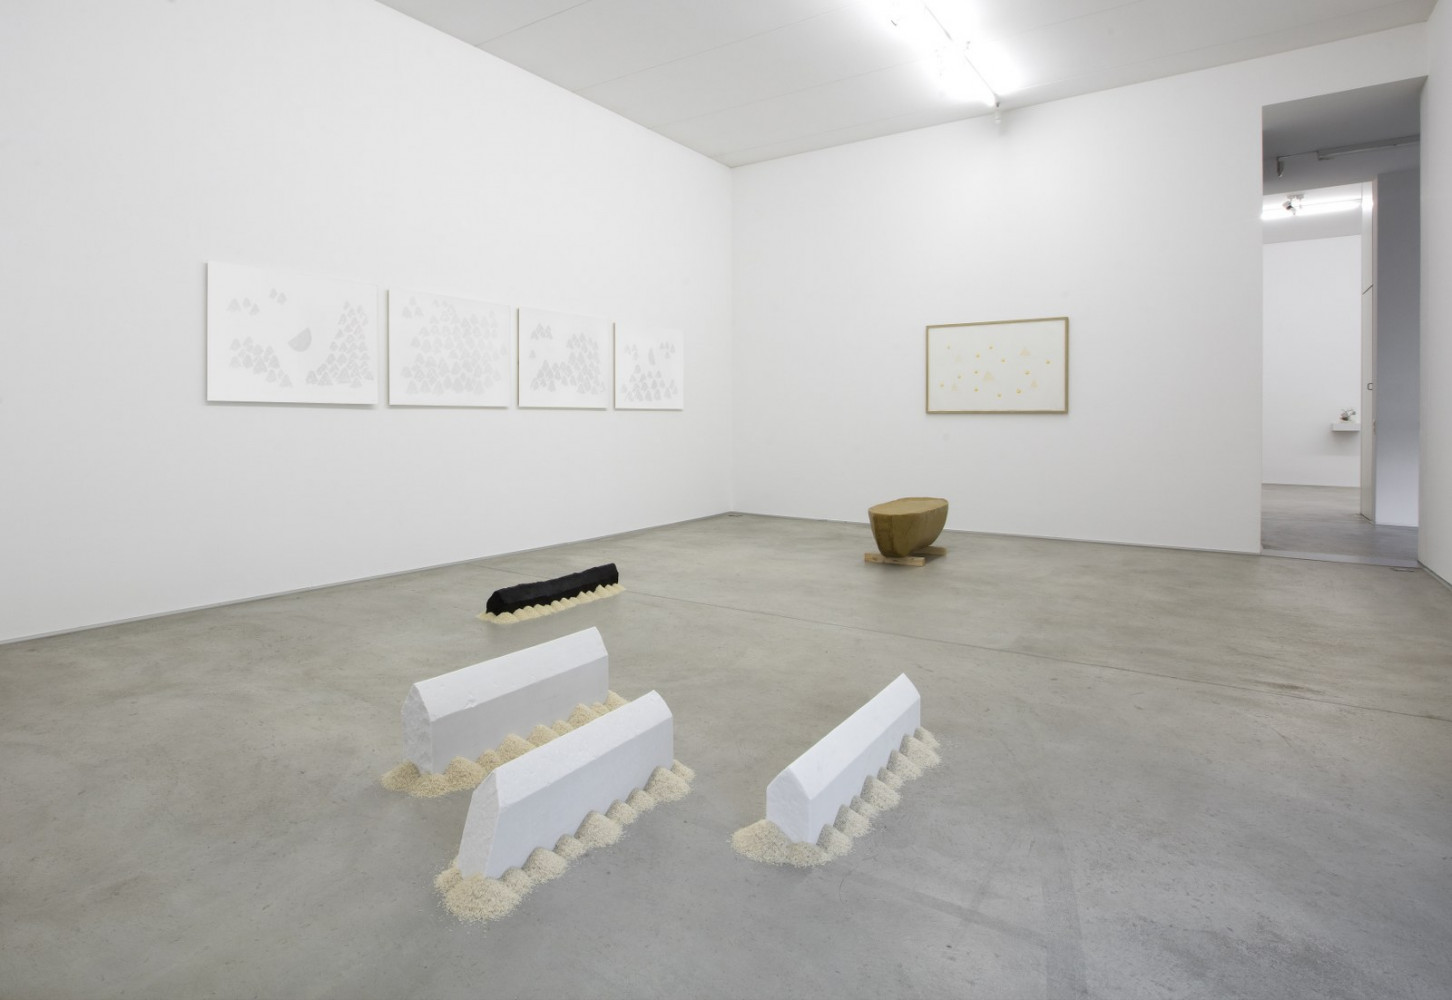 Wolfgang Laib, 'New installation', Installation view, Buchmann Galerie Agra / Lugano, 2017